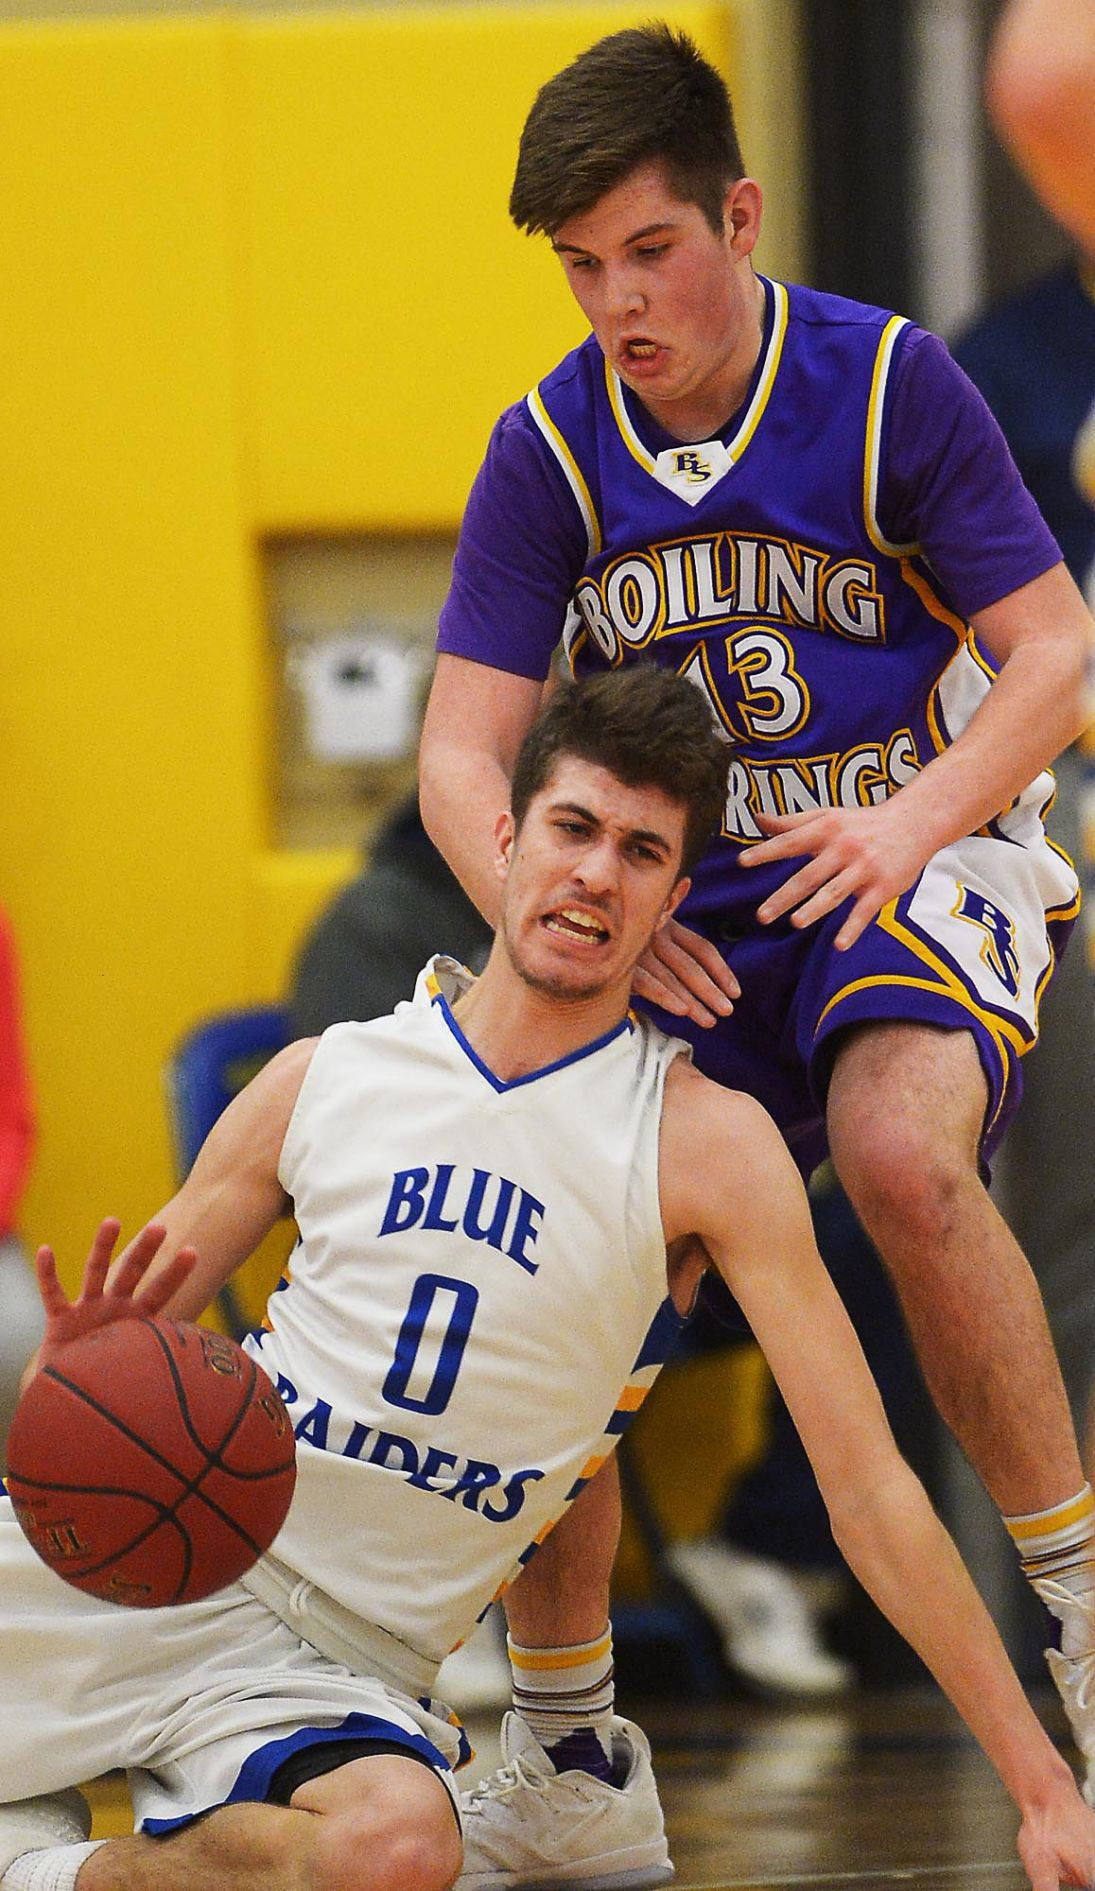 District 3 Boys Basketball: Boiling Springs at Middletown